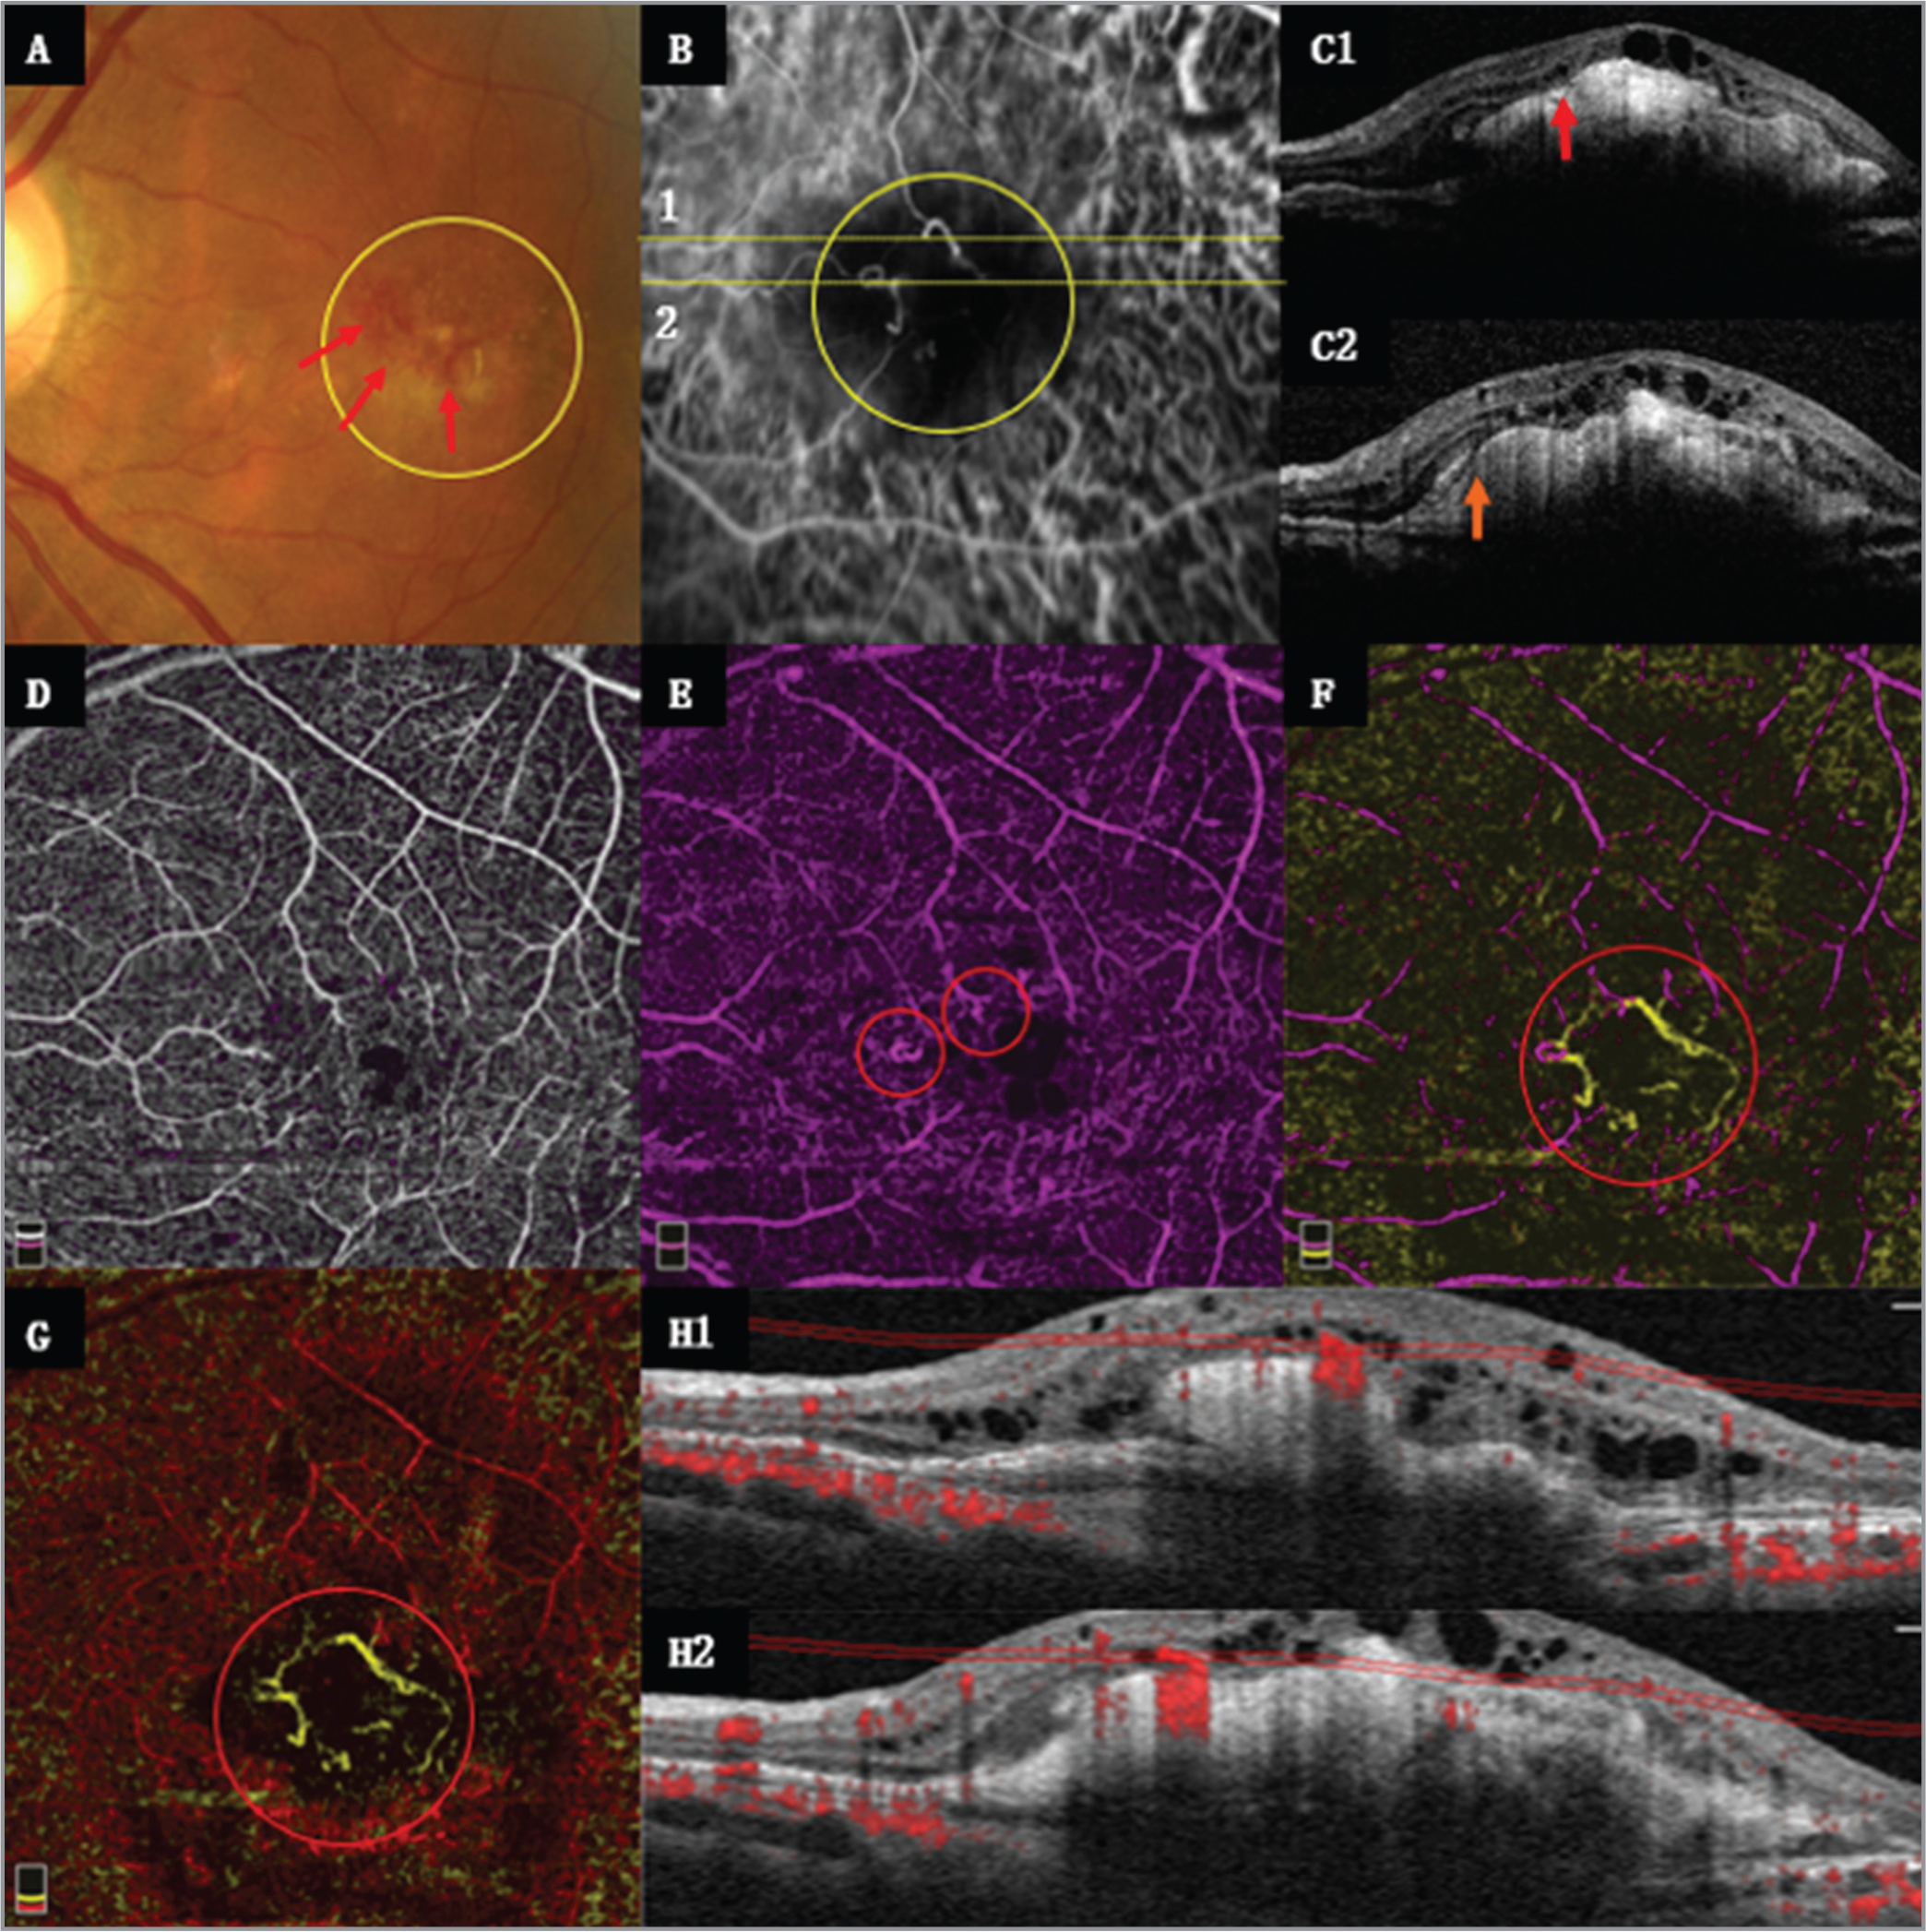 Case 2. Patient 4, a 64-year-old woman, left eye. (A) Fundus photography showed focal supraretinal hemorrhage (red arrow) and several hard exudations on the macular area (yellow circle). (B) The mid-indocyanine green angiography (ICGA) image showed two irregular vessel structure lesions (yellow circle). (C1, C2) Optical coherence tomography (OCT) images, which correspond to section line 1, 2 (yellow dotted line) in Figure 4B, respectively, showed two unclear lumen-like structures (red circle) and rupture of pigment membrane (red arrow). (D-G) OCT angiography (OCTA) en face images correspond to superficial, deep, outer retina, and choroidal cap, respectively. (H1, H2) OCTA B-scan images, which correspond to section line 1, 2 (yellow dotted line) in Figure 4B, respectively, showed high blood flow signals in the lumen-like structures (double red line). The rupture of the pigment membrane was covered by the projection of the blood flow signal.